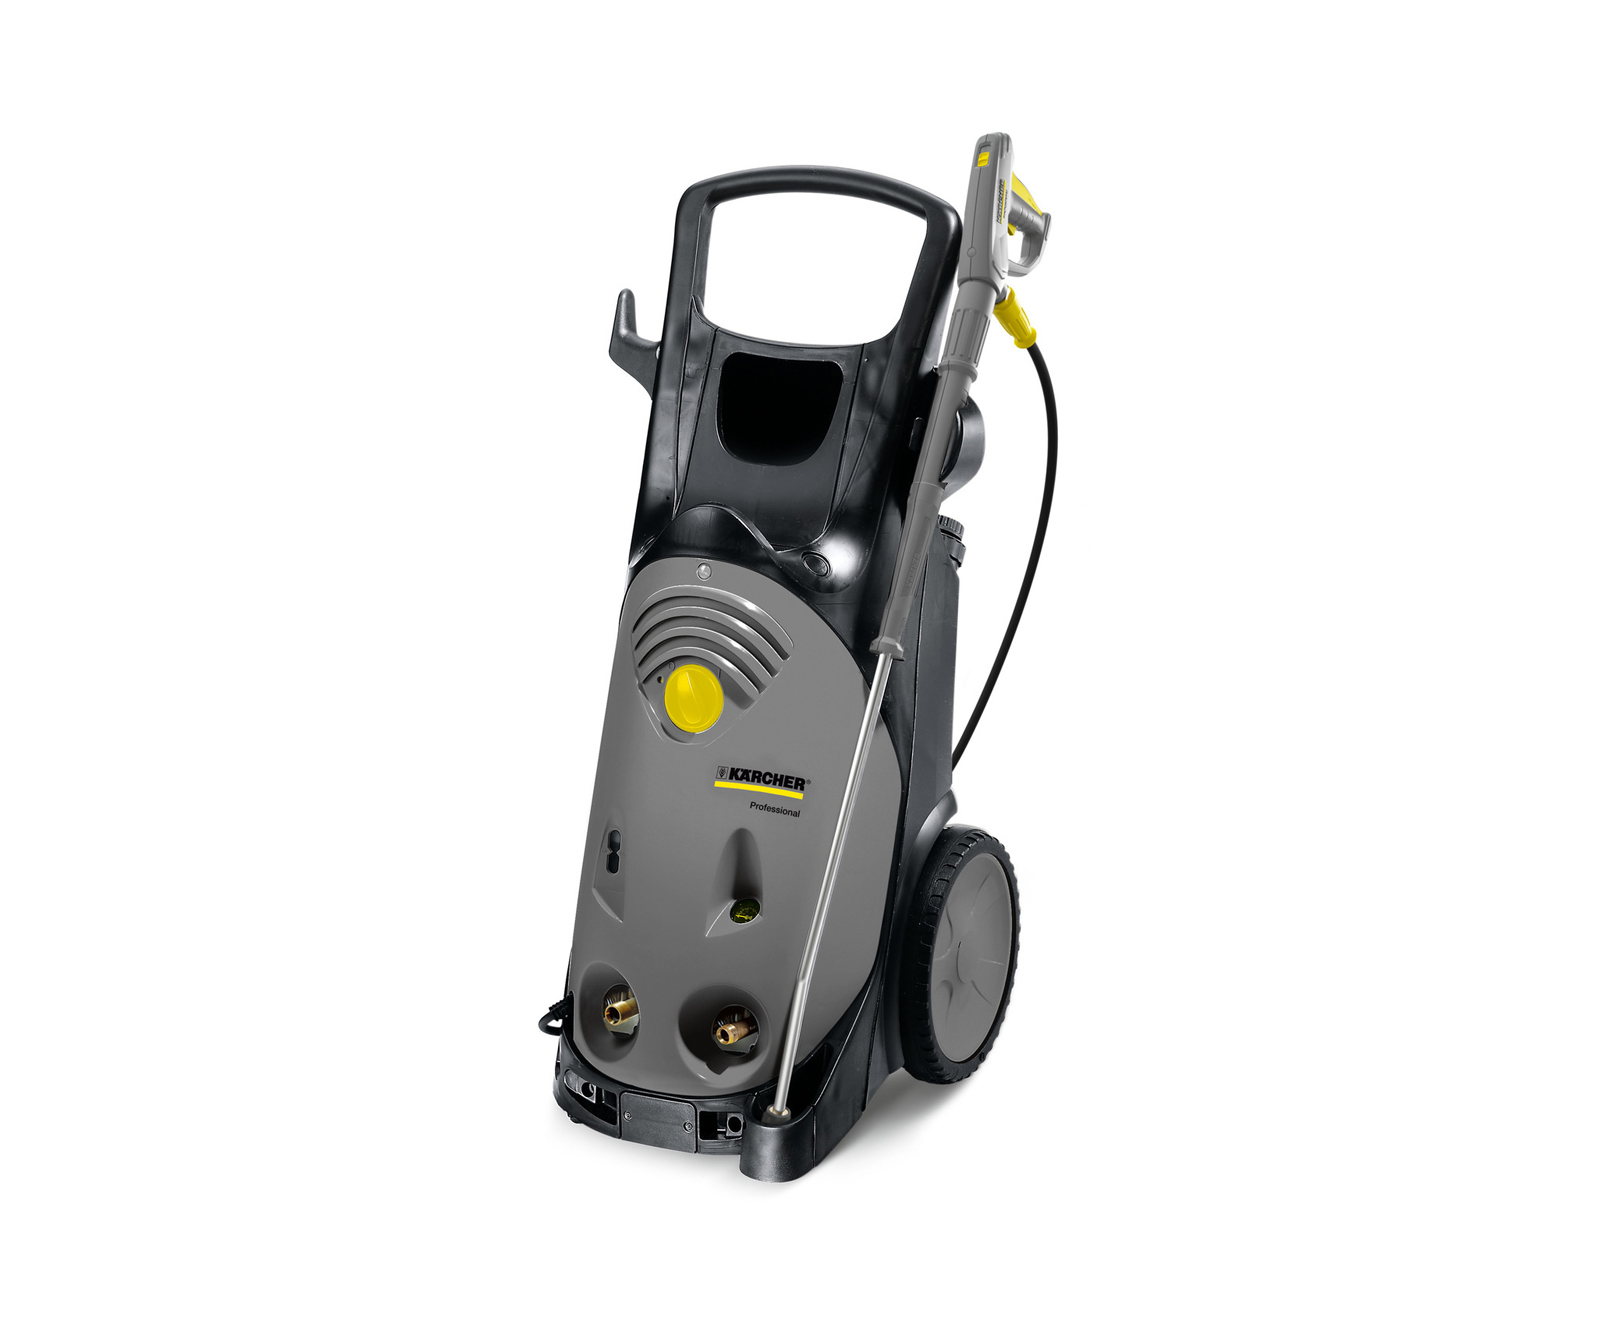 Kärcher Pro Cold Water High-pressure Cleaners - Super Class